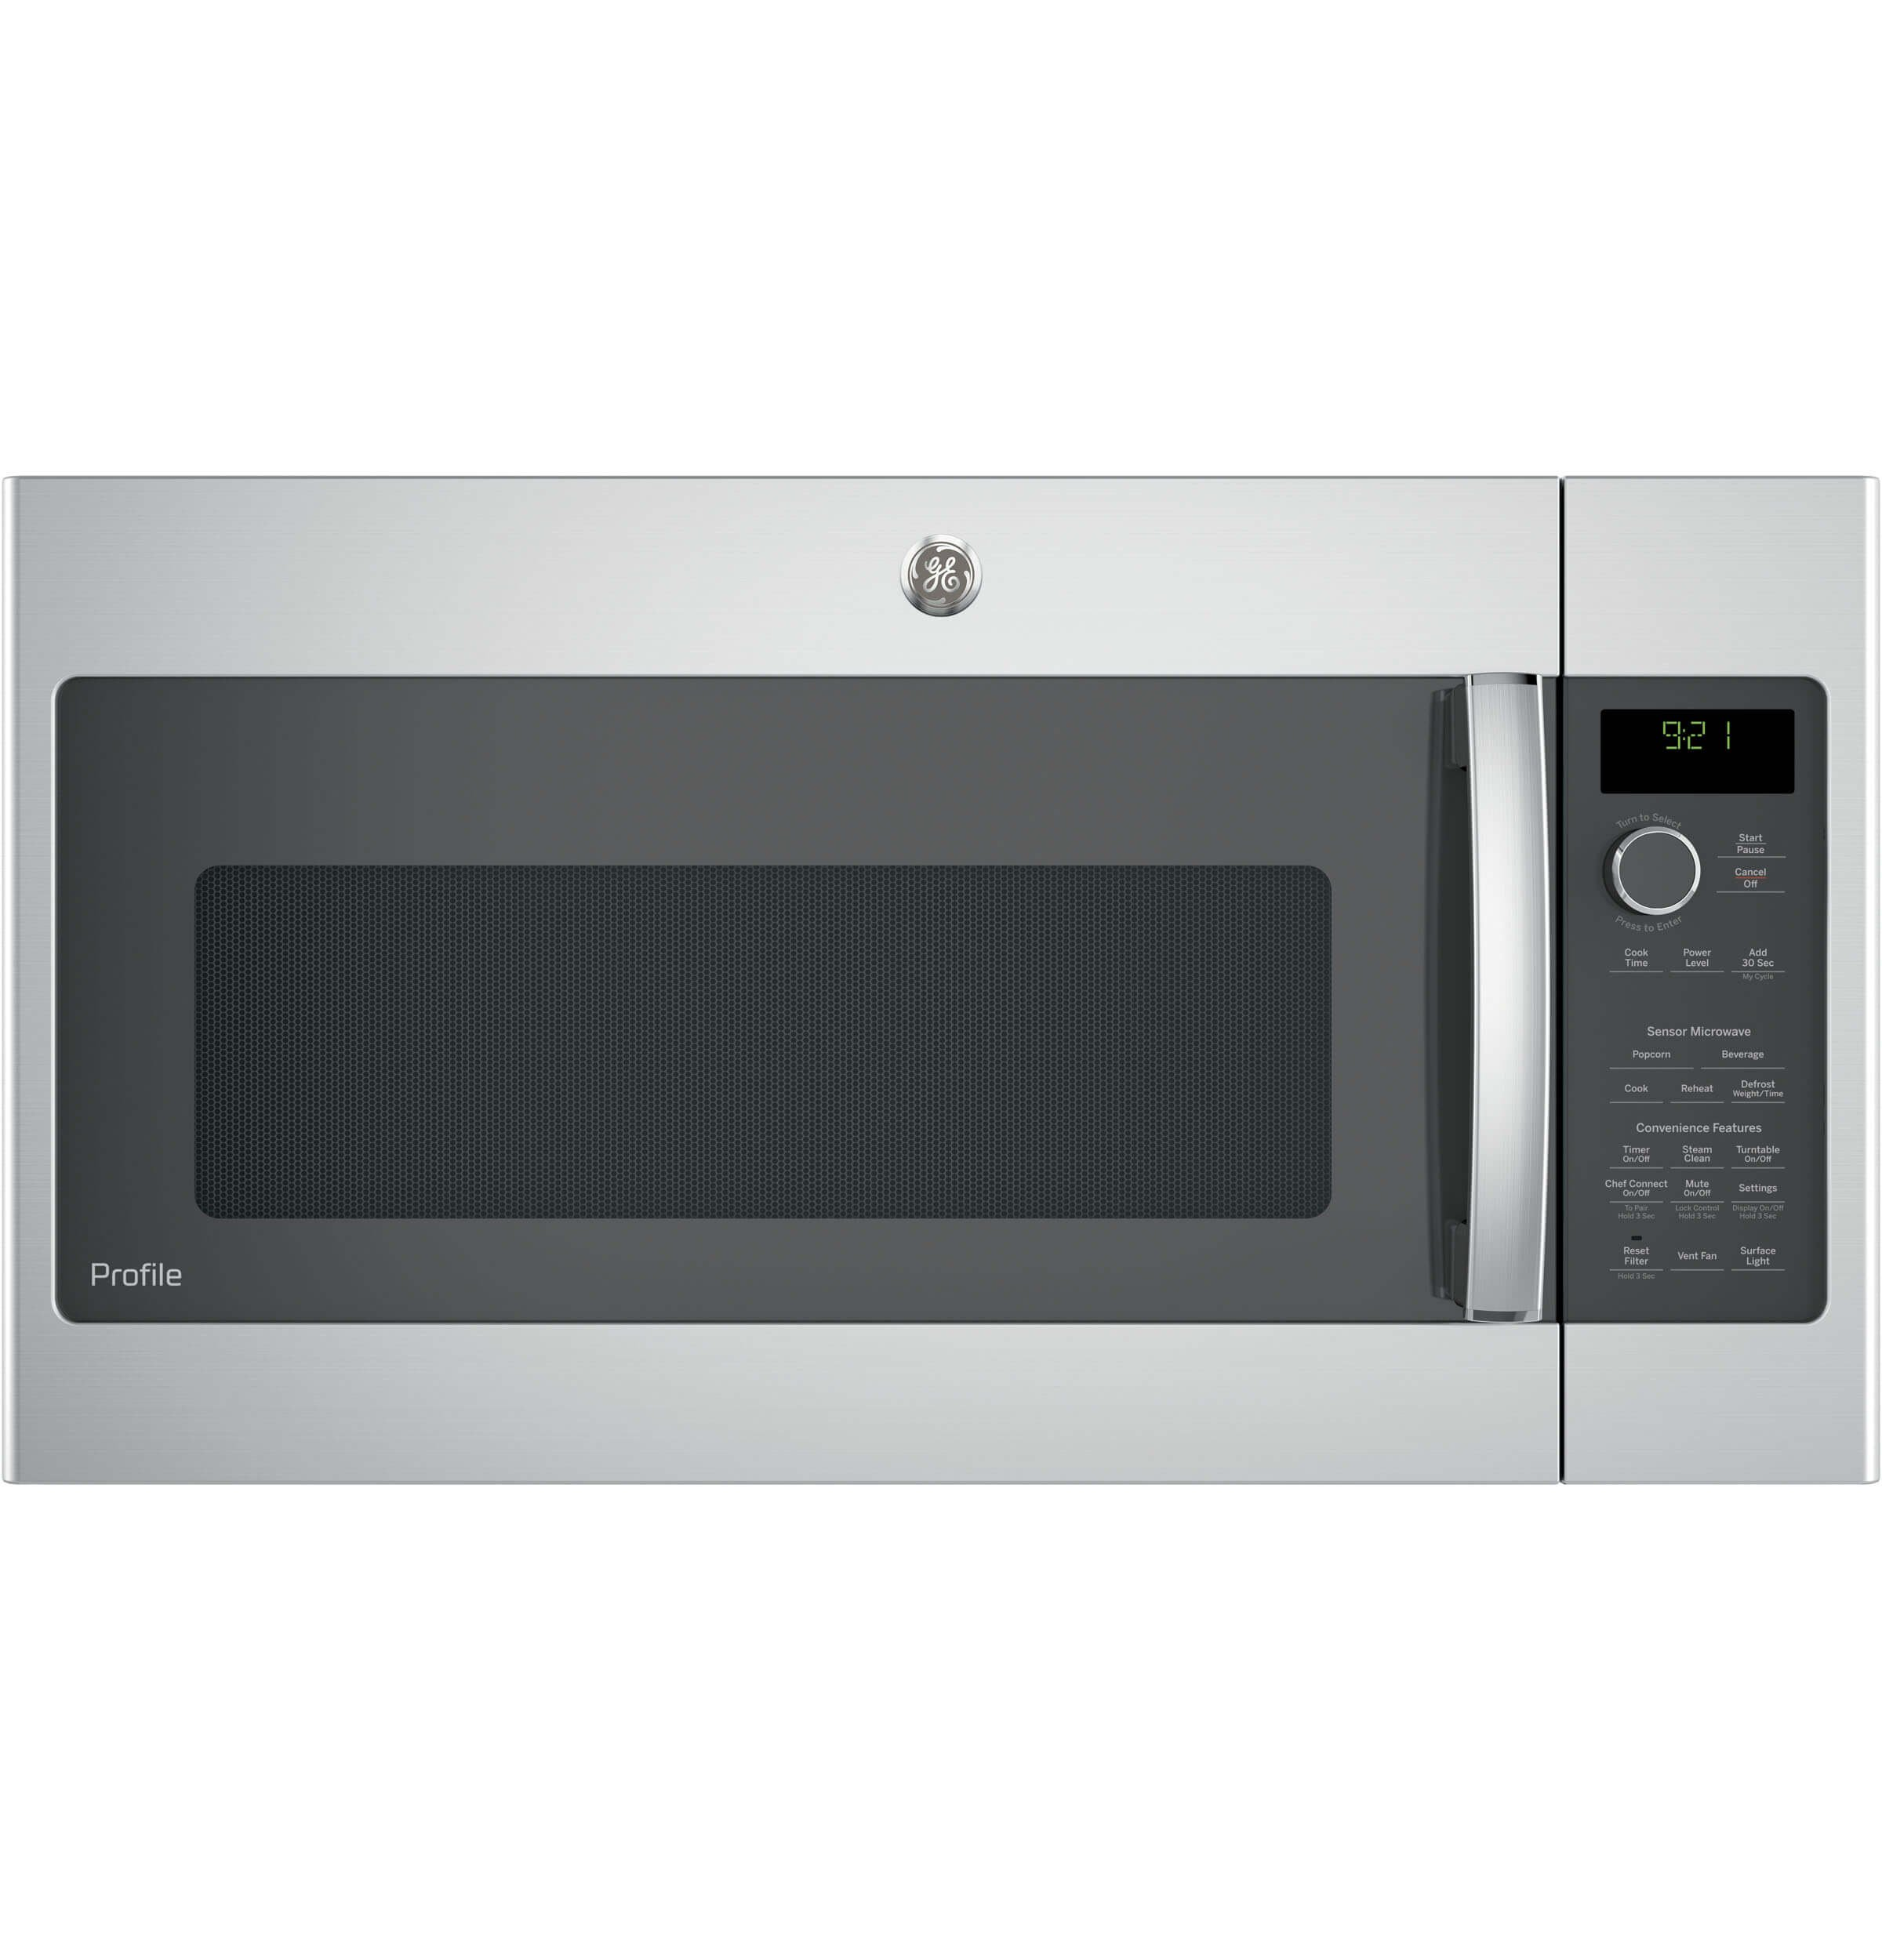 GE PNM9216SKSS Microwave Oven